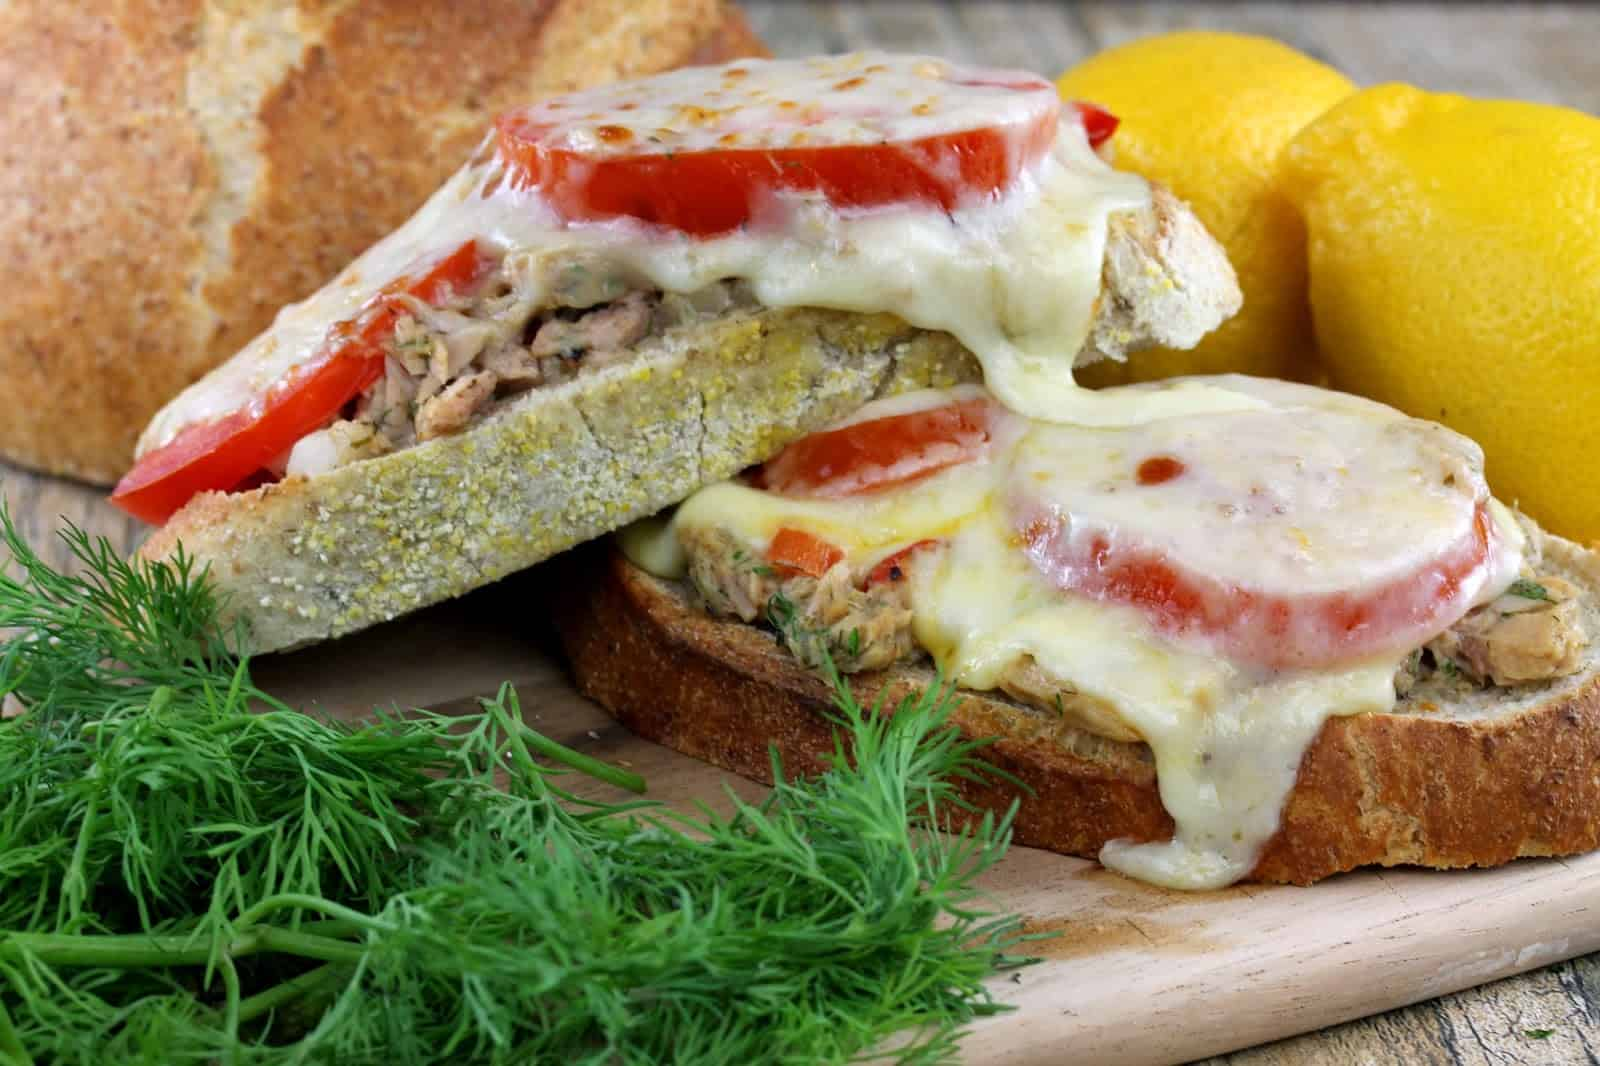 Tuna Melt on Rye: Tuna flavored with fresh dill and sliced tomato stacked on rye bread with bubbly melted cheese